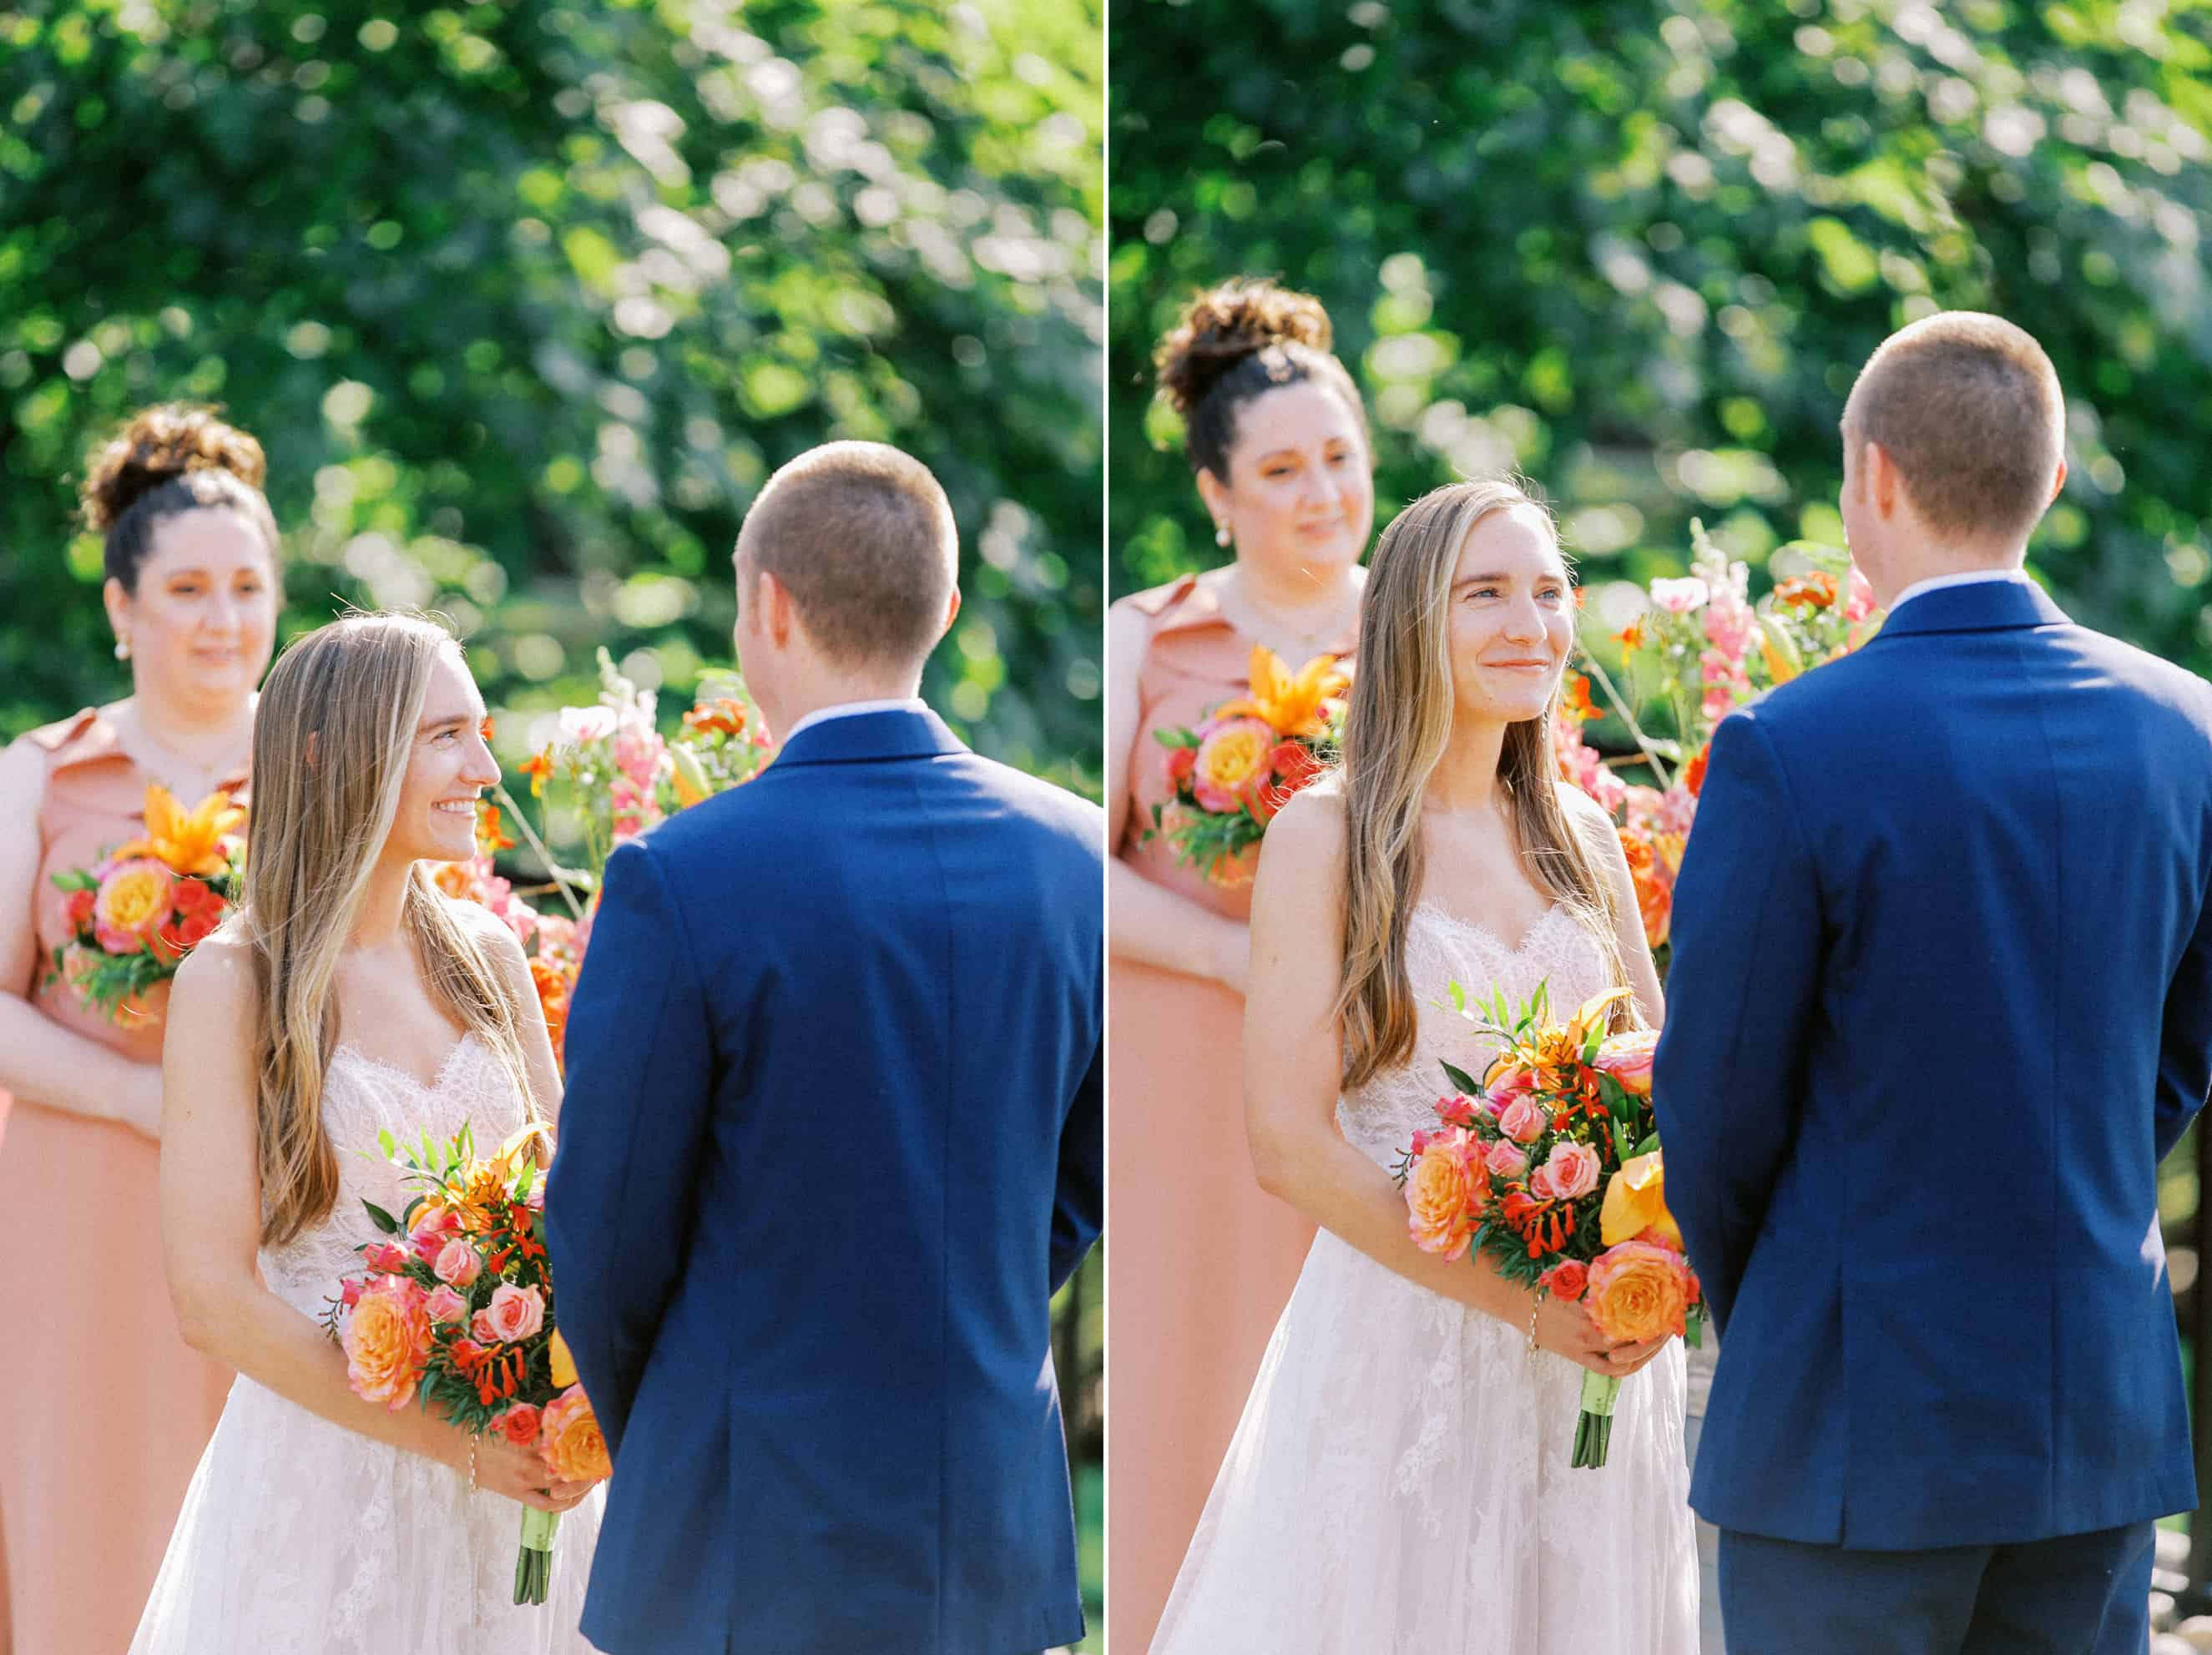 Wedding Ceremonies Outdoors at The Lake House Inn